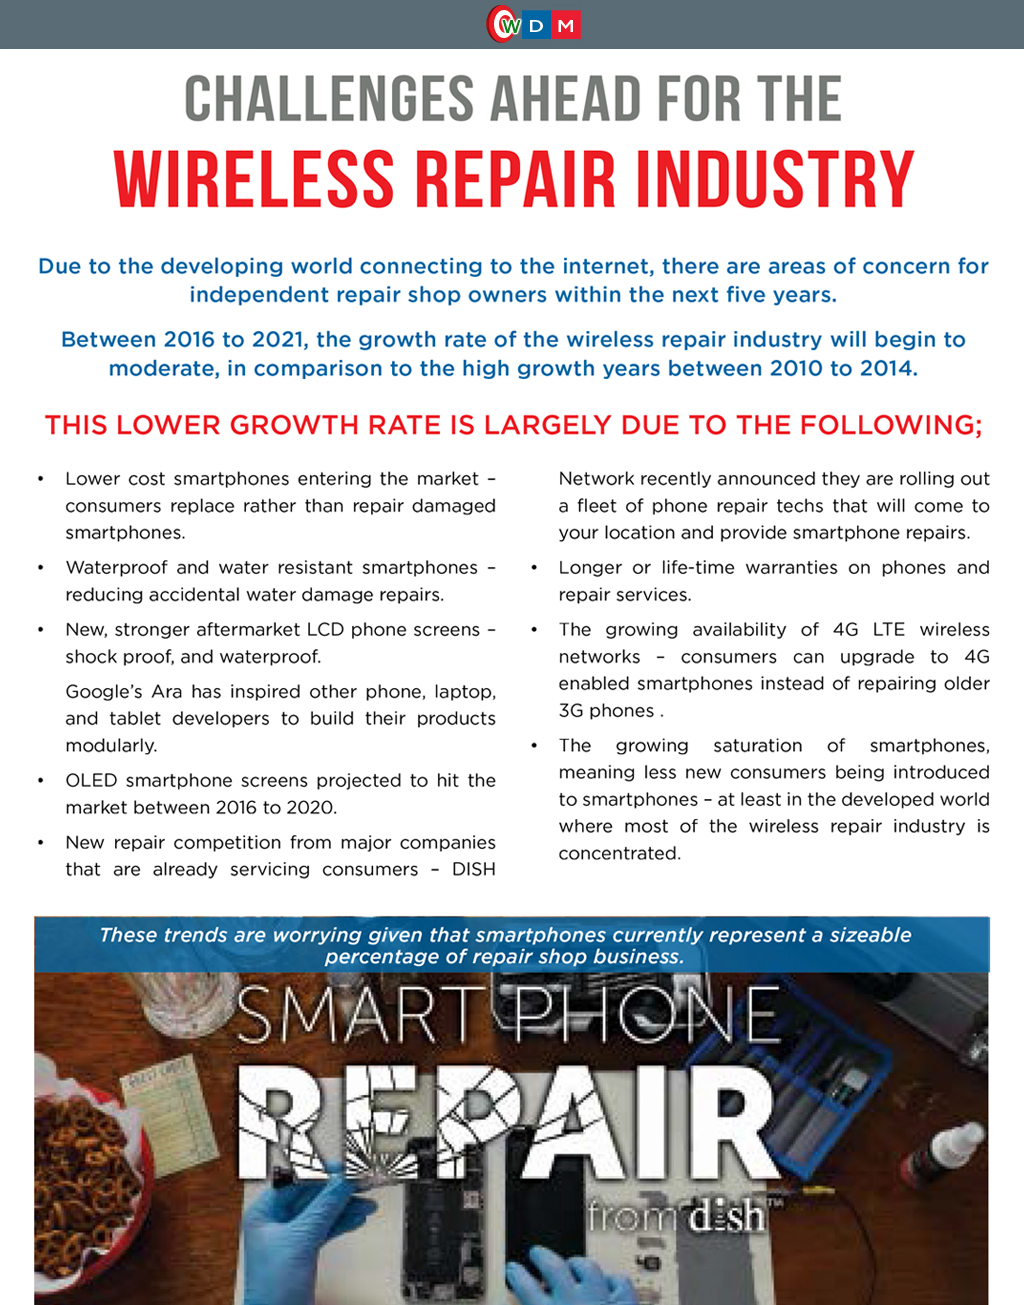 Challenges Ahead for the Wireless Repair Industry